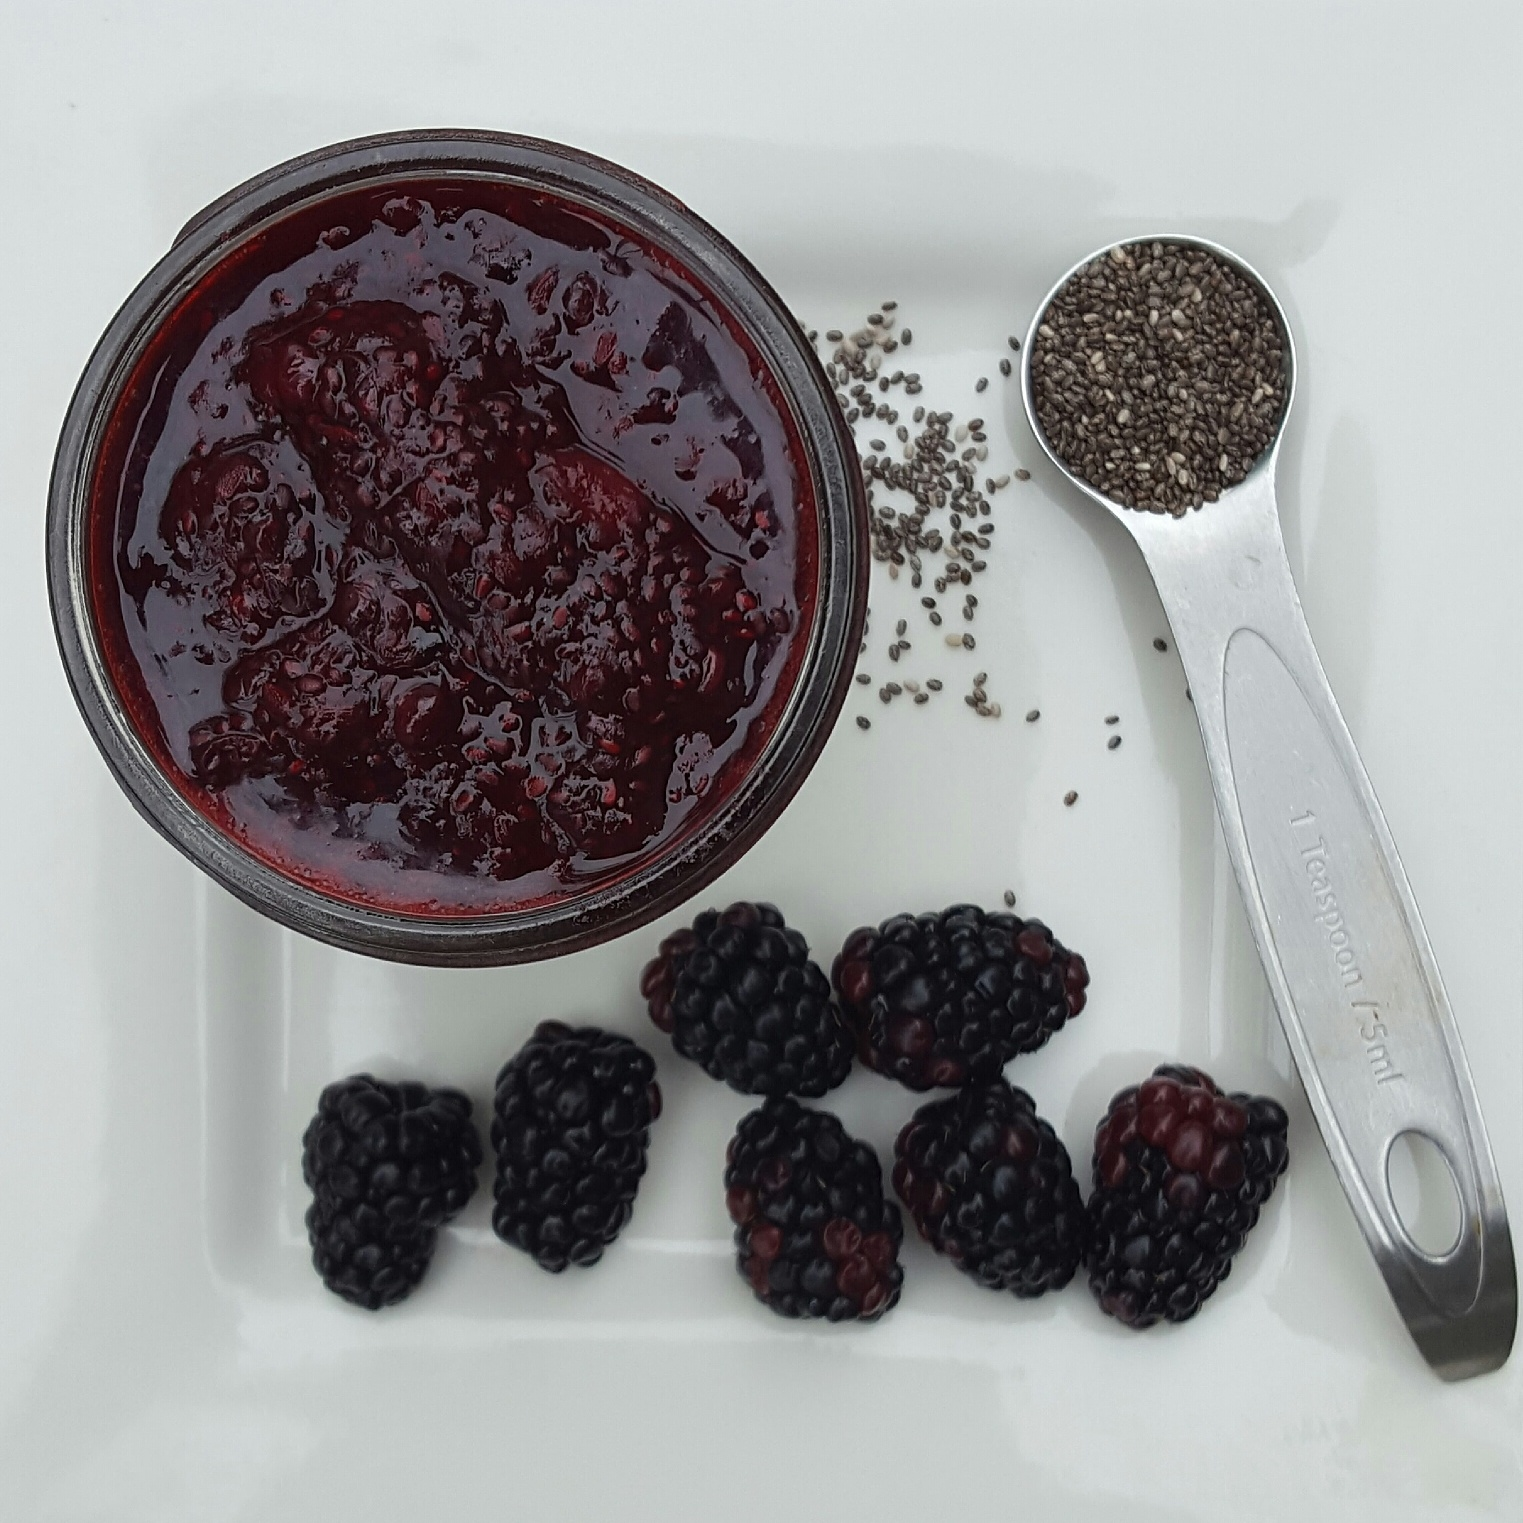 Voilá. Easy chia jam with any fruit. No need to buy store bought jam anymore!